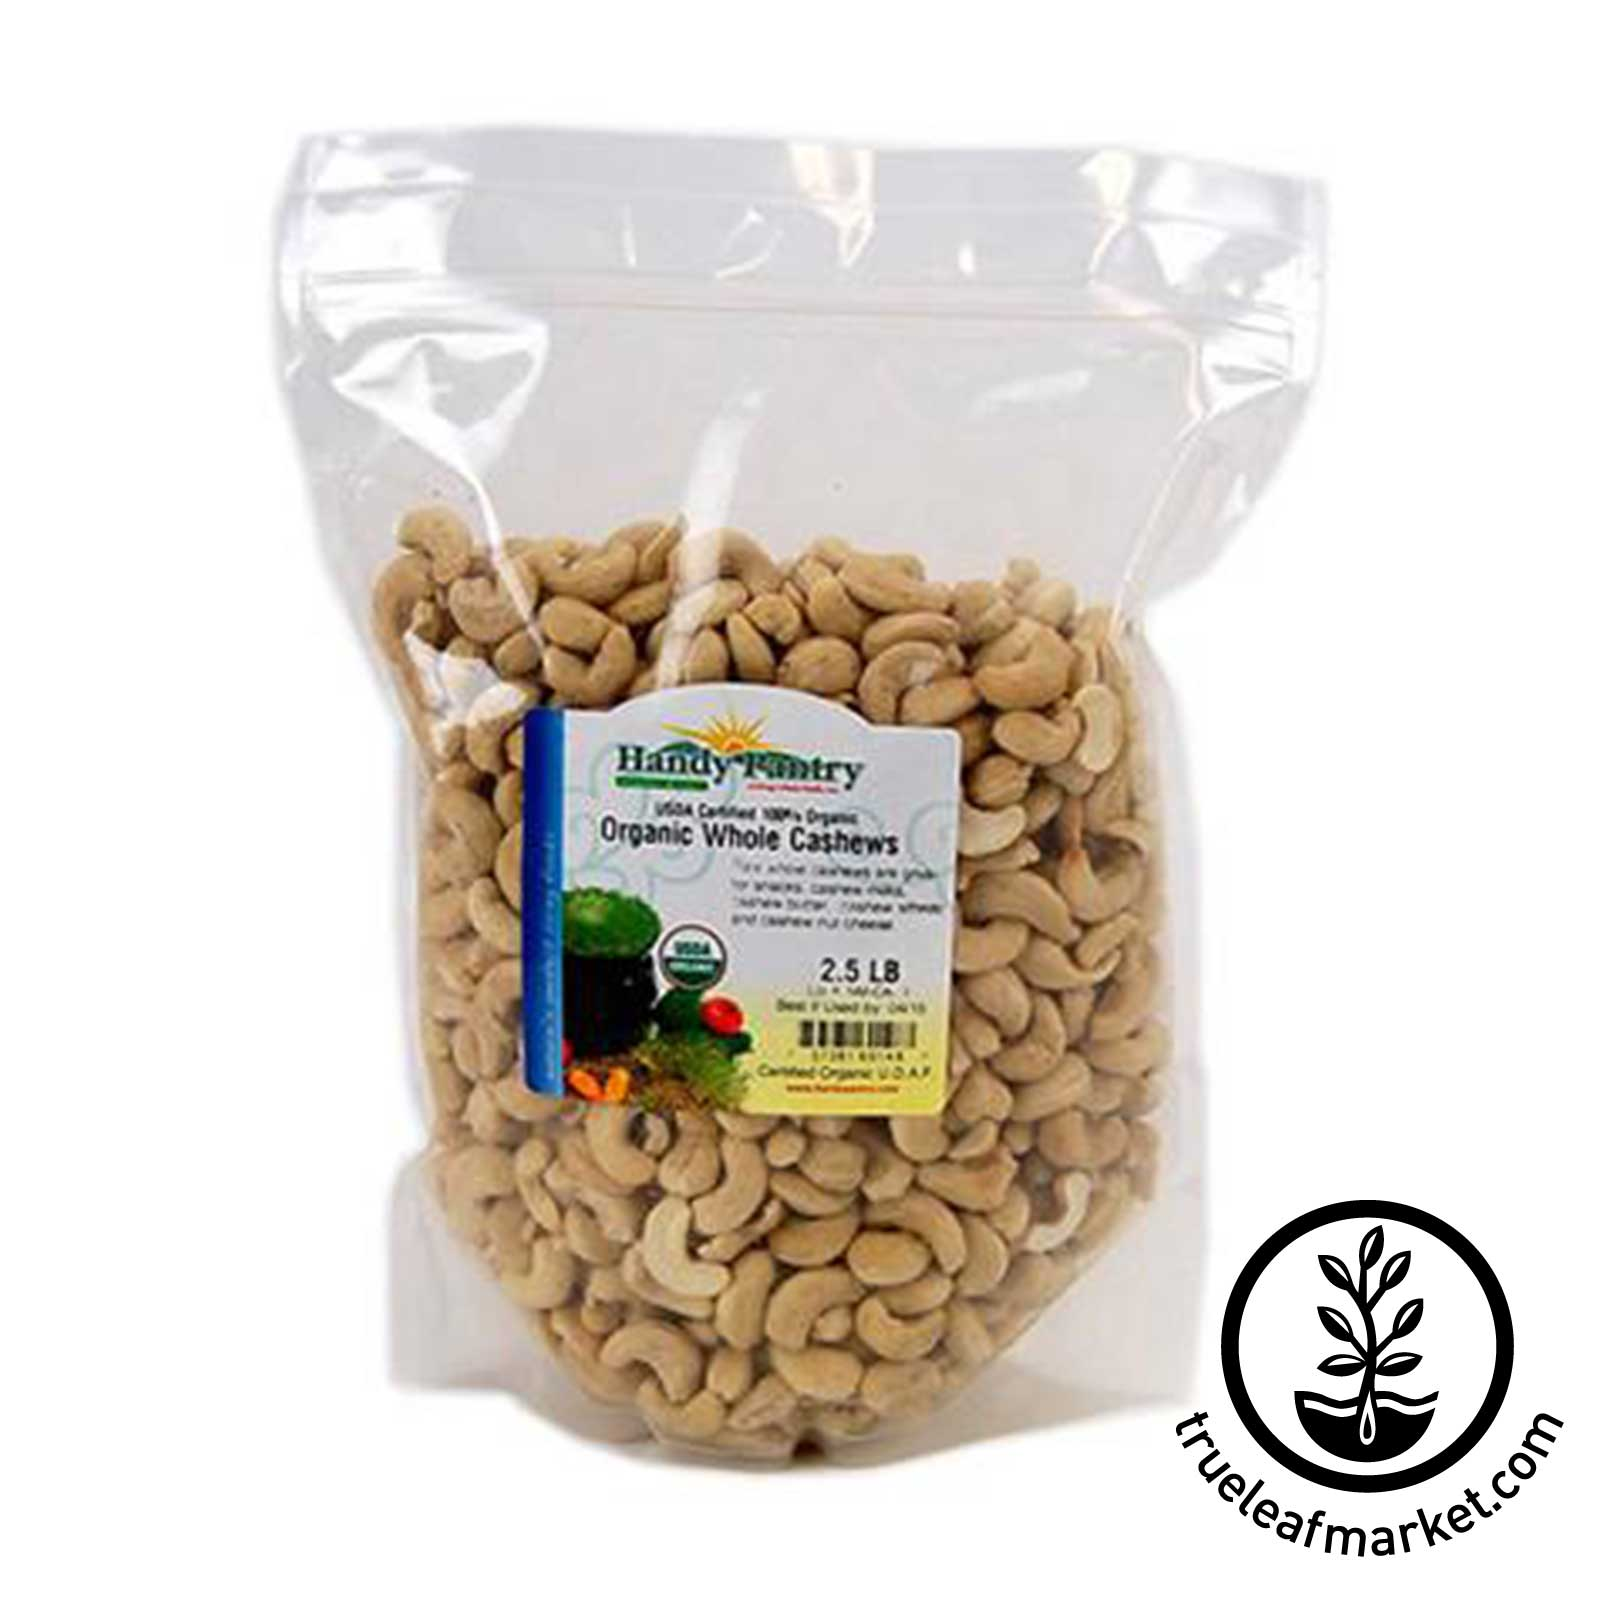 Organic Whole Cashews - 2.5 lbs